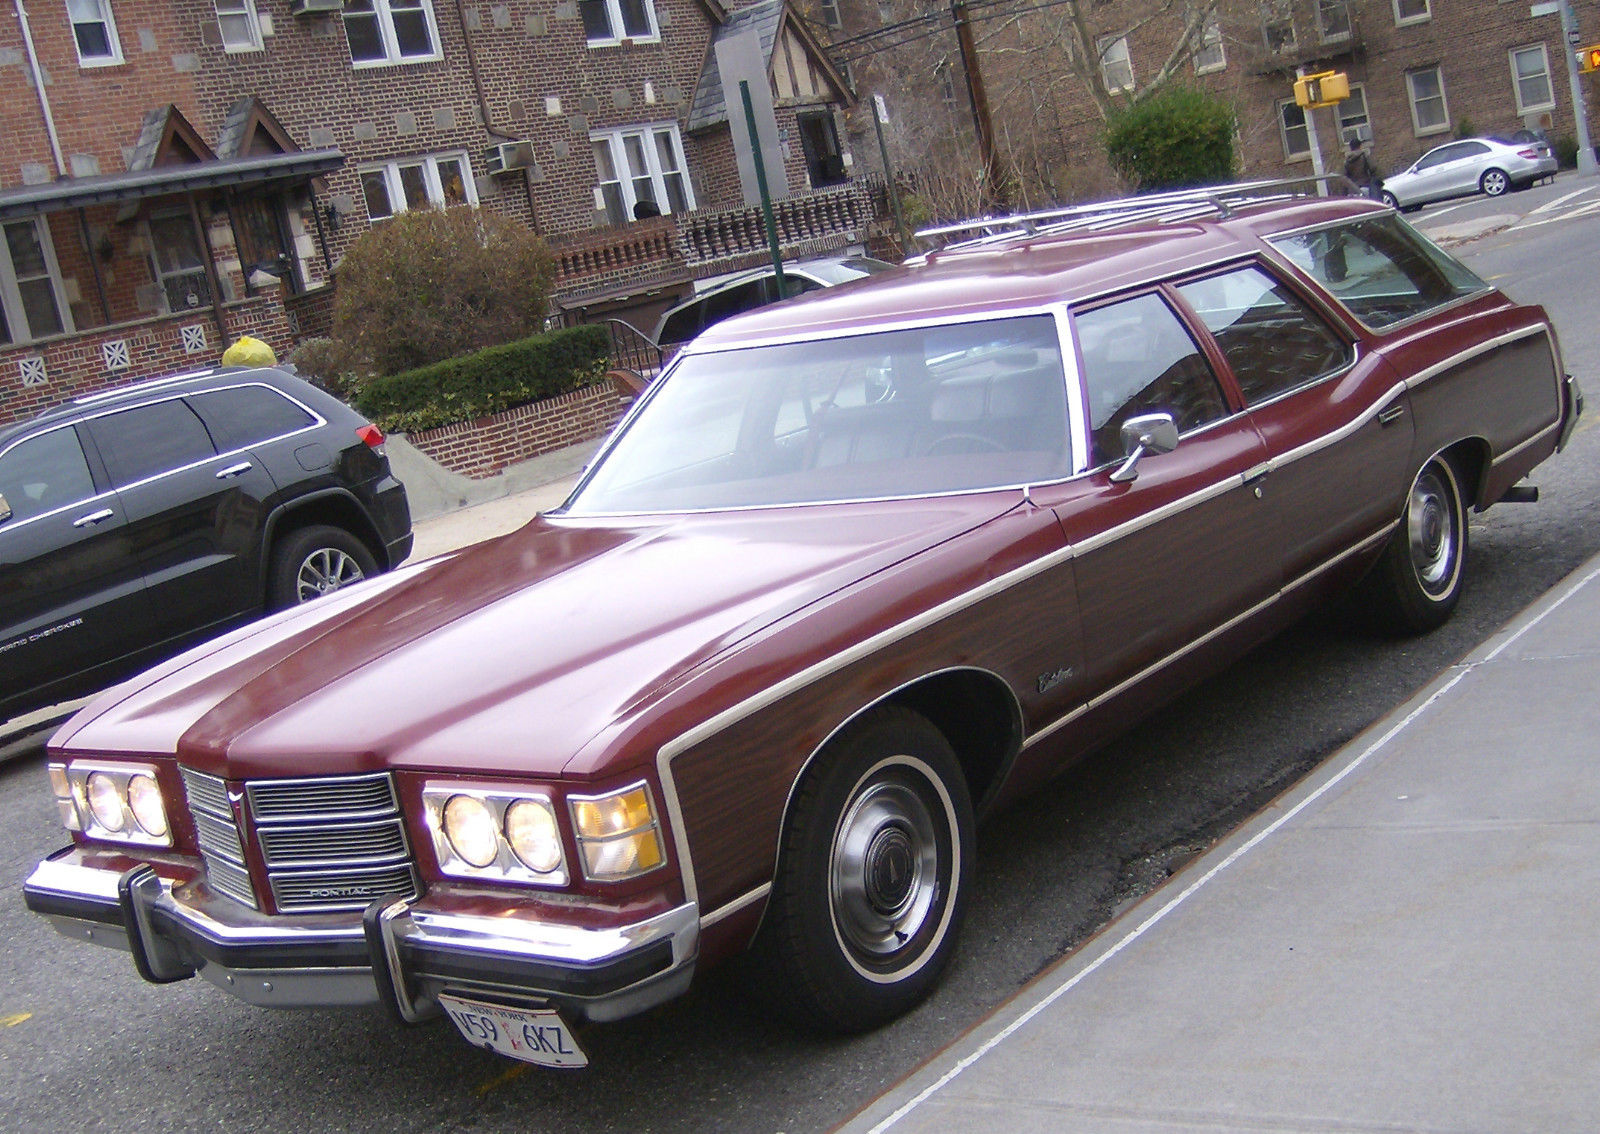 1975 Pontiac Catalina SAFARI THREE SEAT CLAMSHELL WAGON ... |1975 Catalina Station Wagon Buick